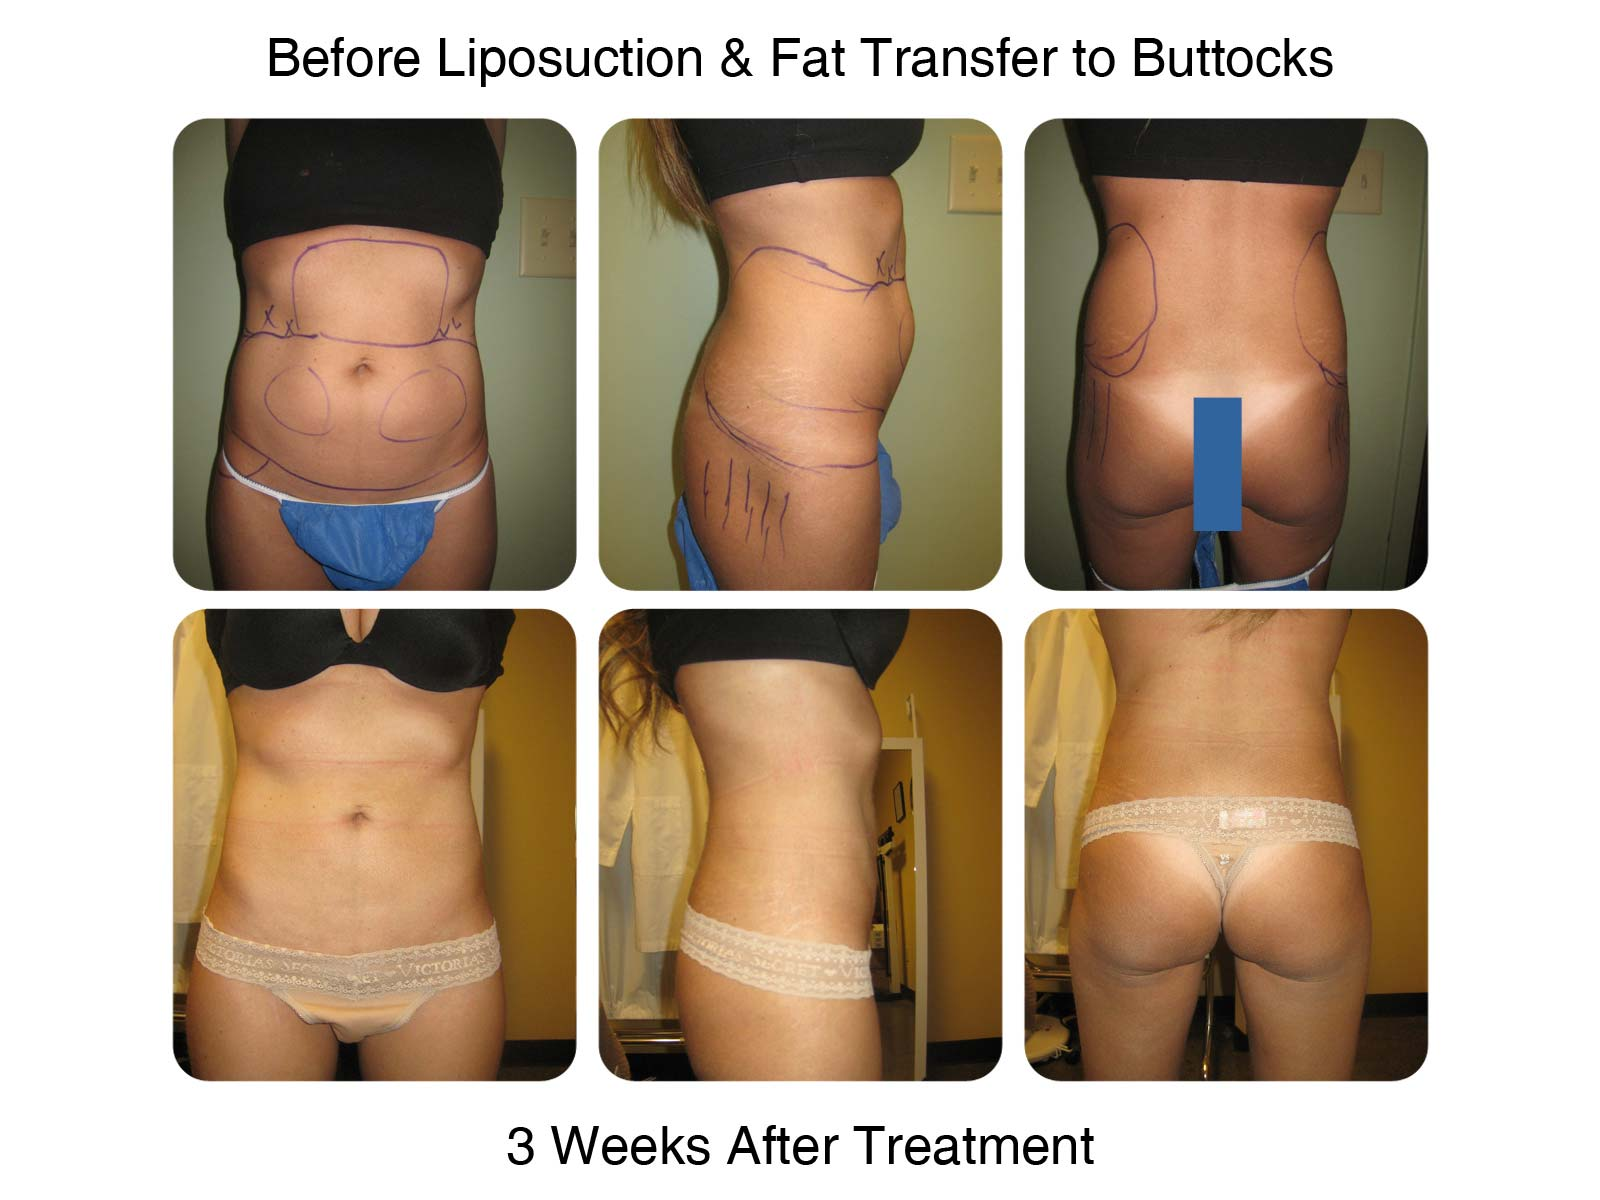 Brazilian Butt Lift Fat Transfer Before and After 6